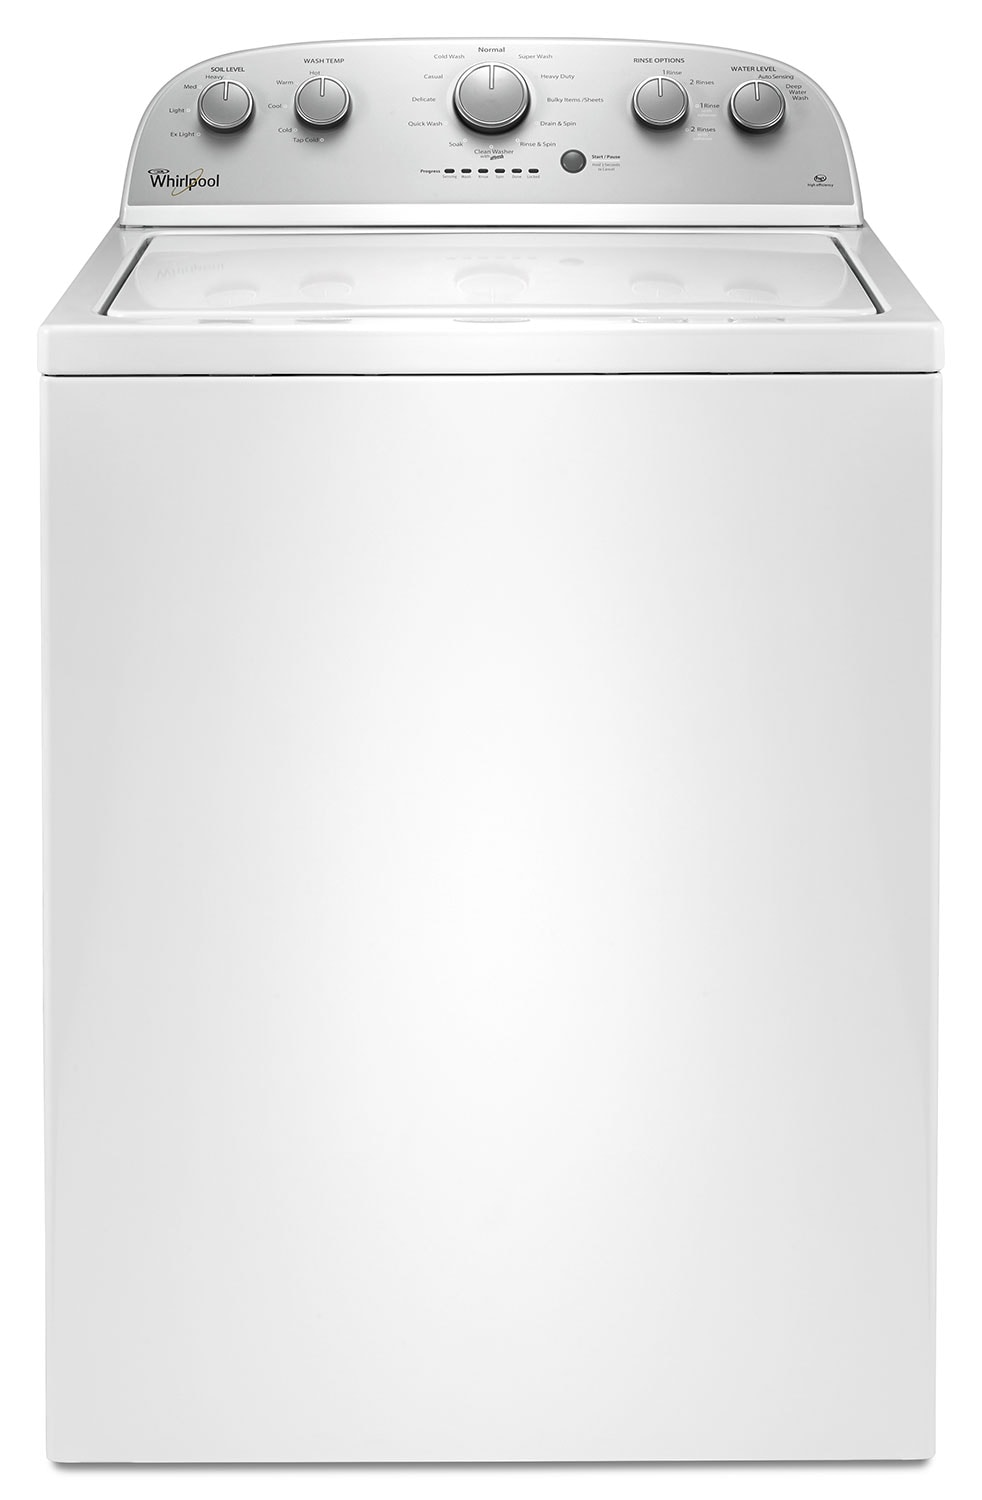 Washers and Dryers - Whirlpool 3.5 Cu. Ft. Top-Load Washer – WTW4816FW